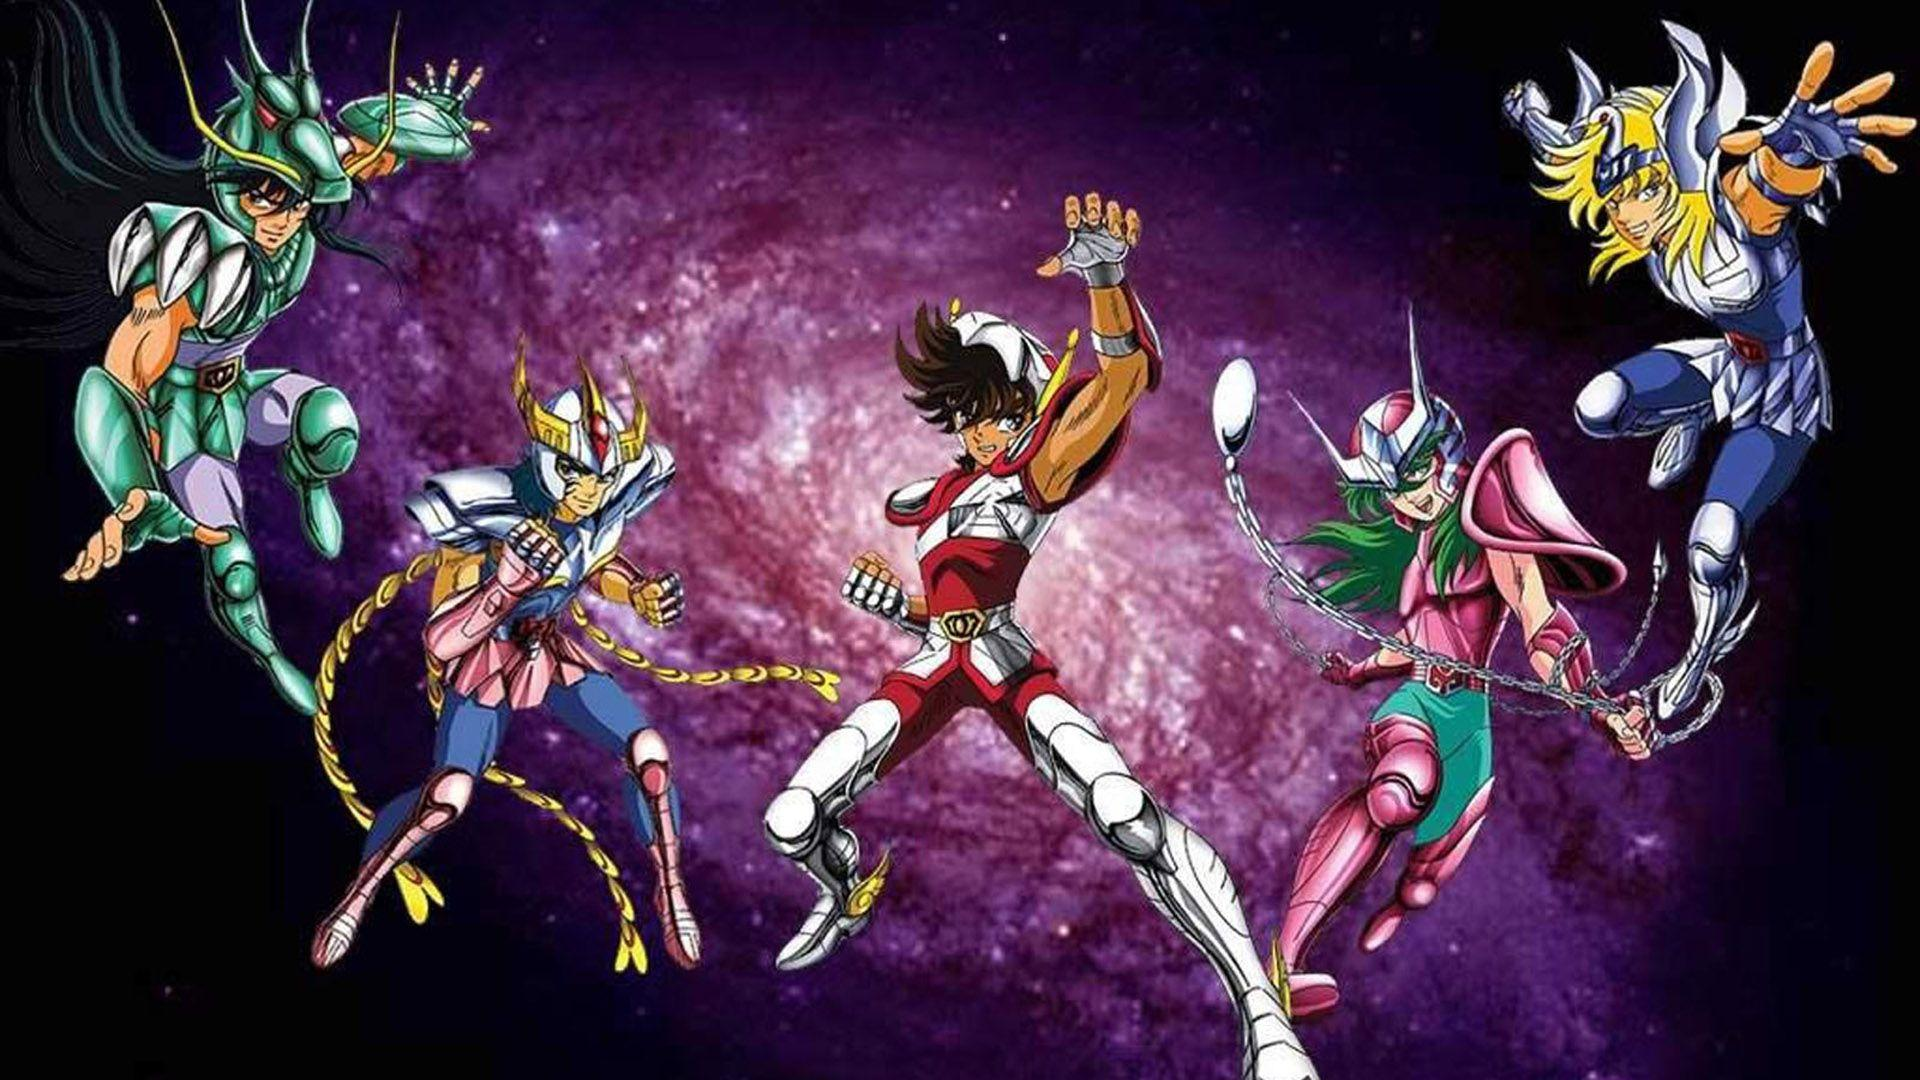 Saint Seiya Wallpaper 1920x1080 Wallpapers